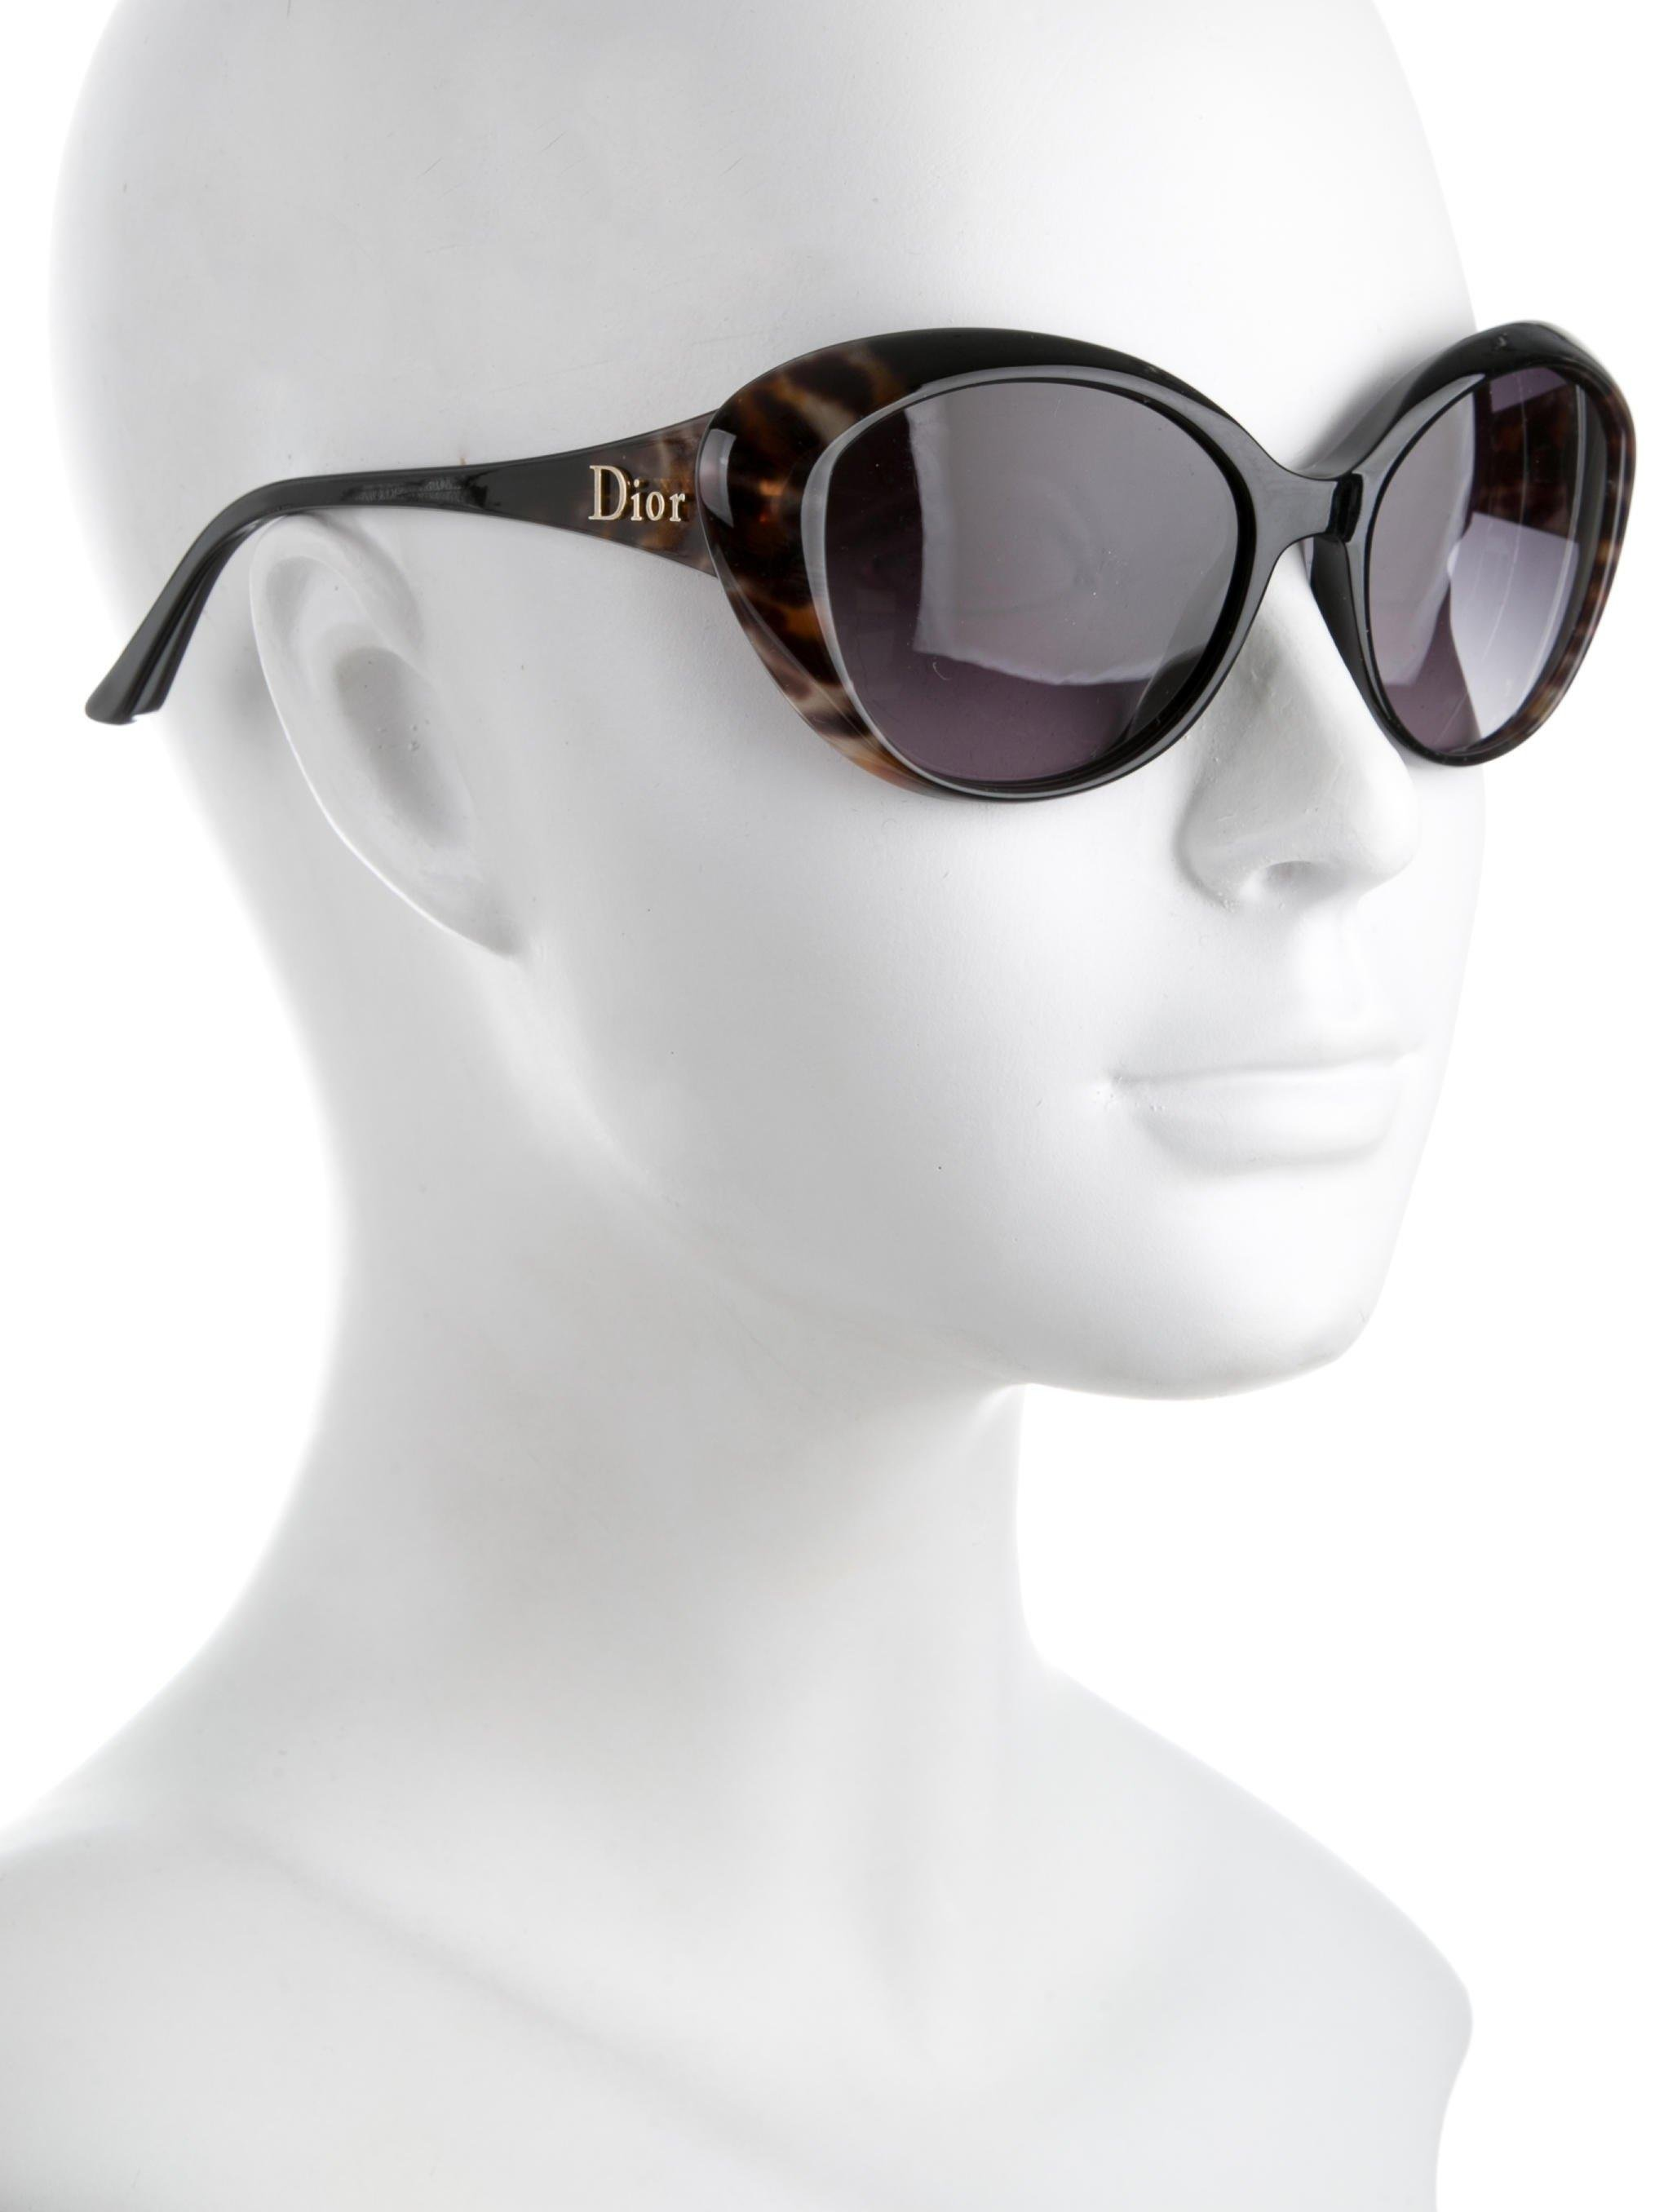 757551e03ca93 Lyst - Dior Panther 2 Cat-eye Sunglasses Black in Metallic